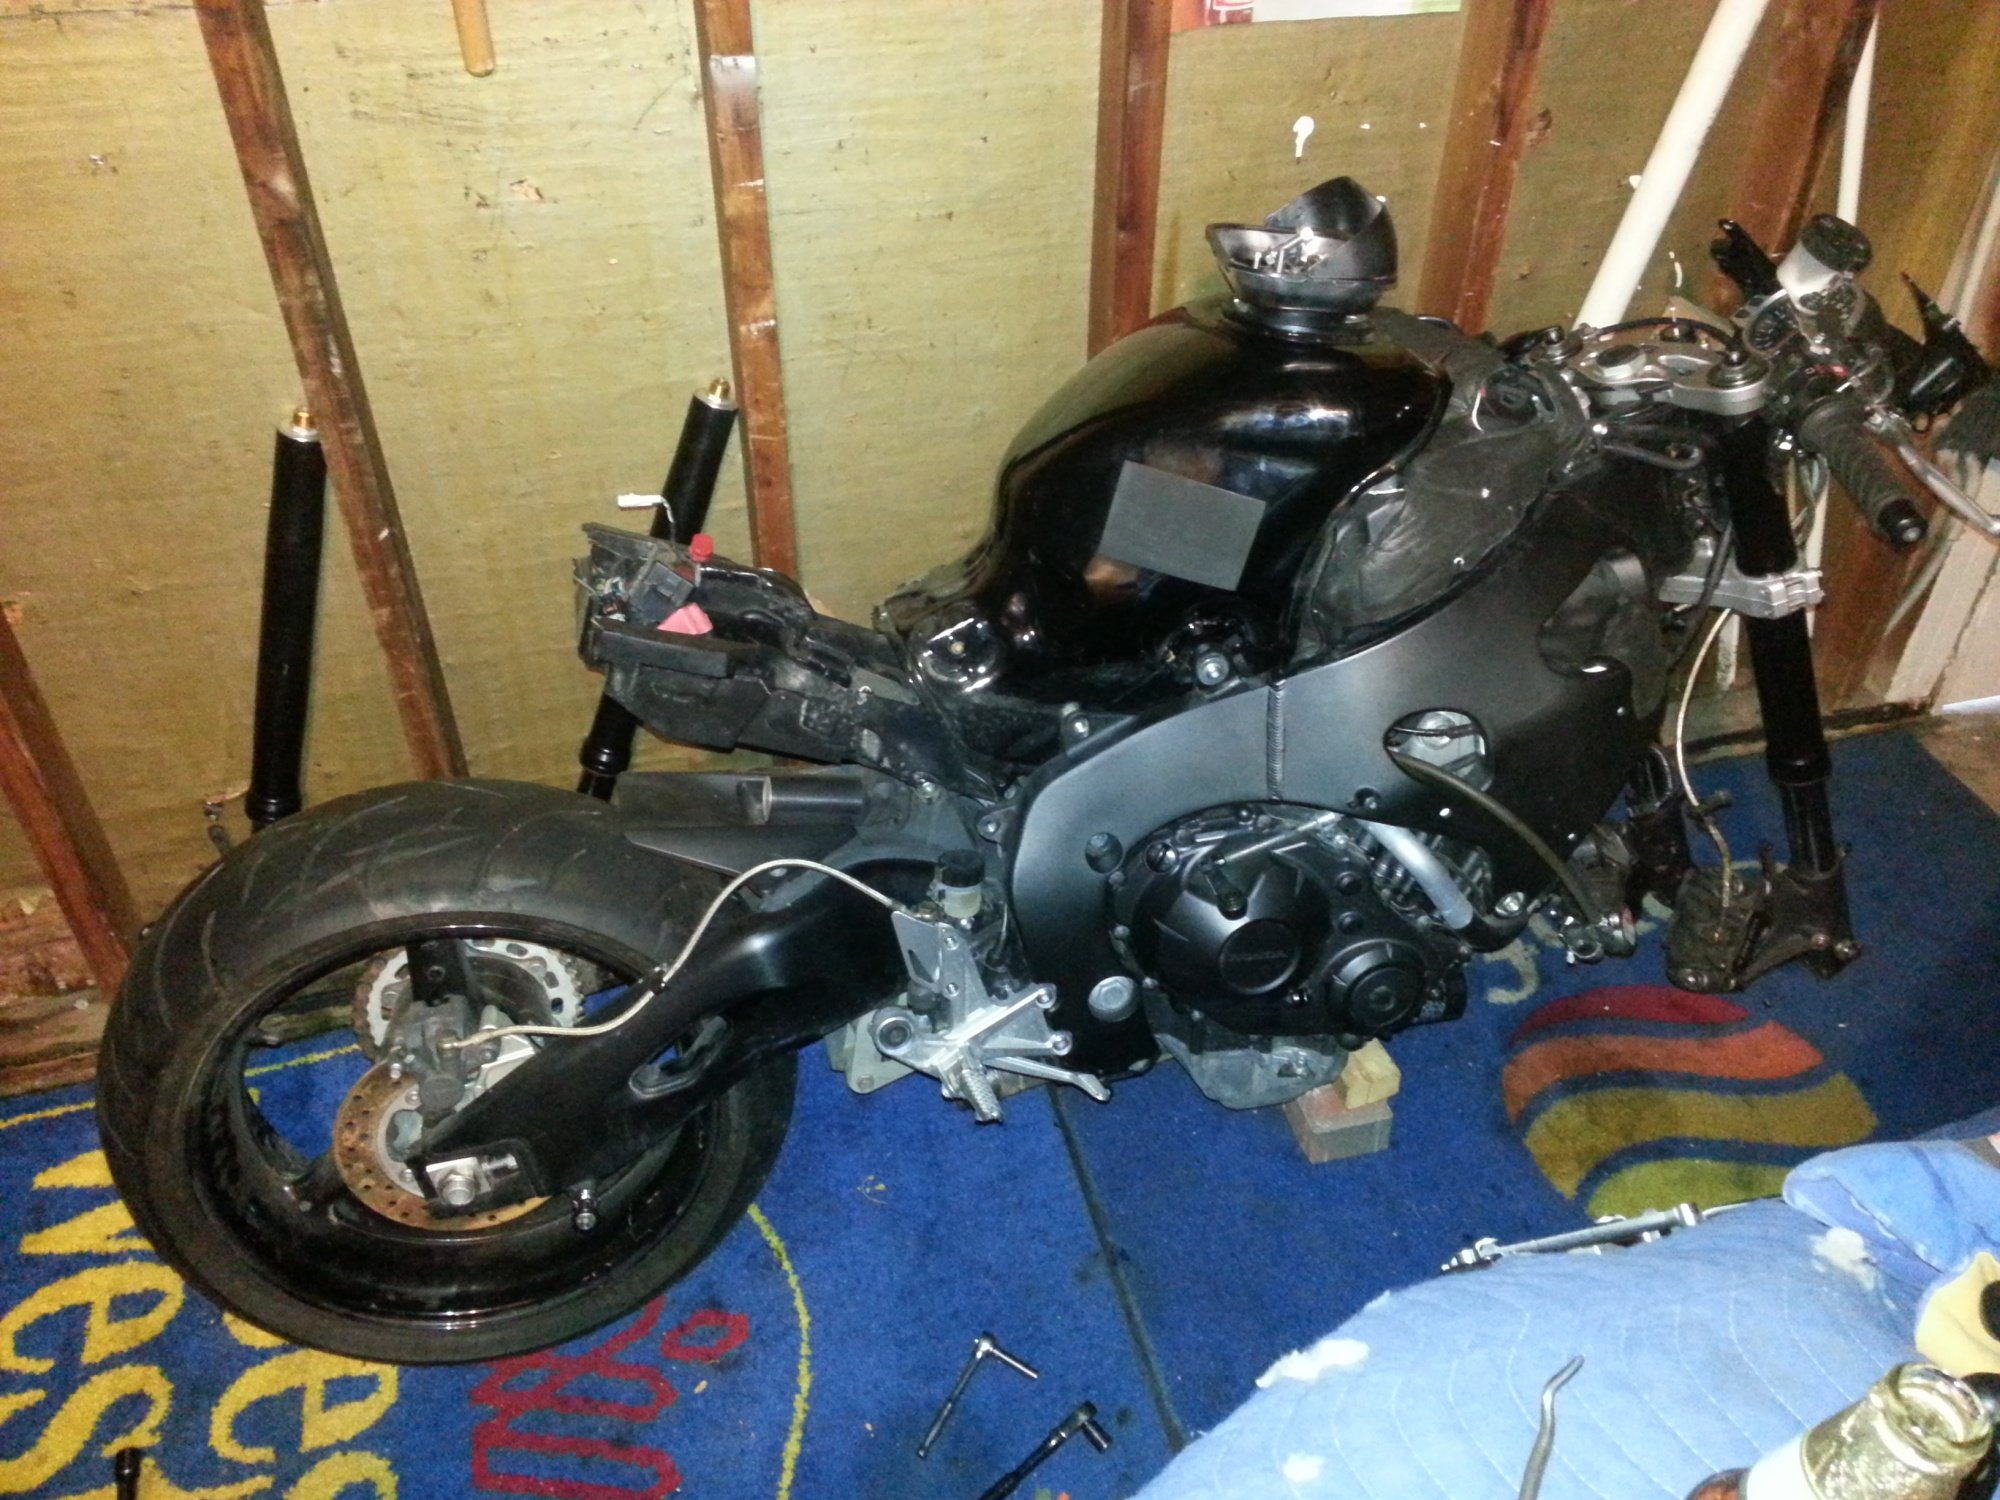 im almost done fixing  my 2008 cbr 1000 i was a trashed bike!-20121108_153117.jpg